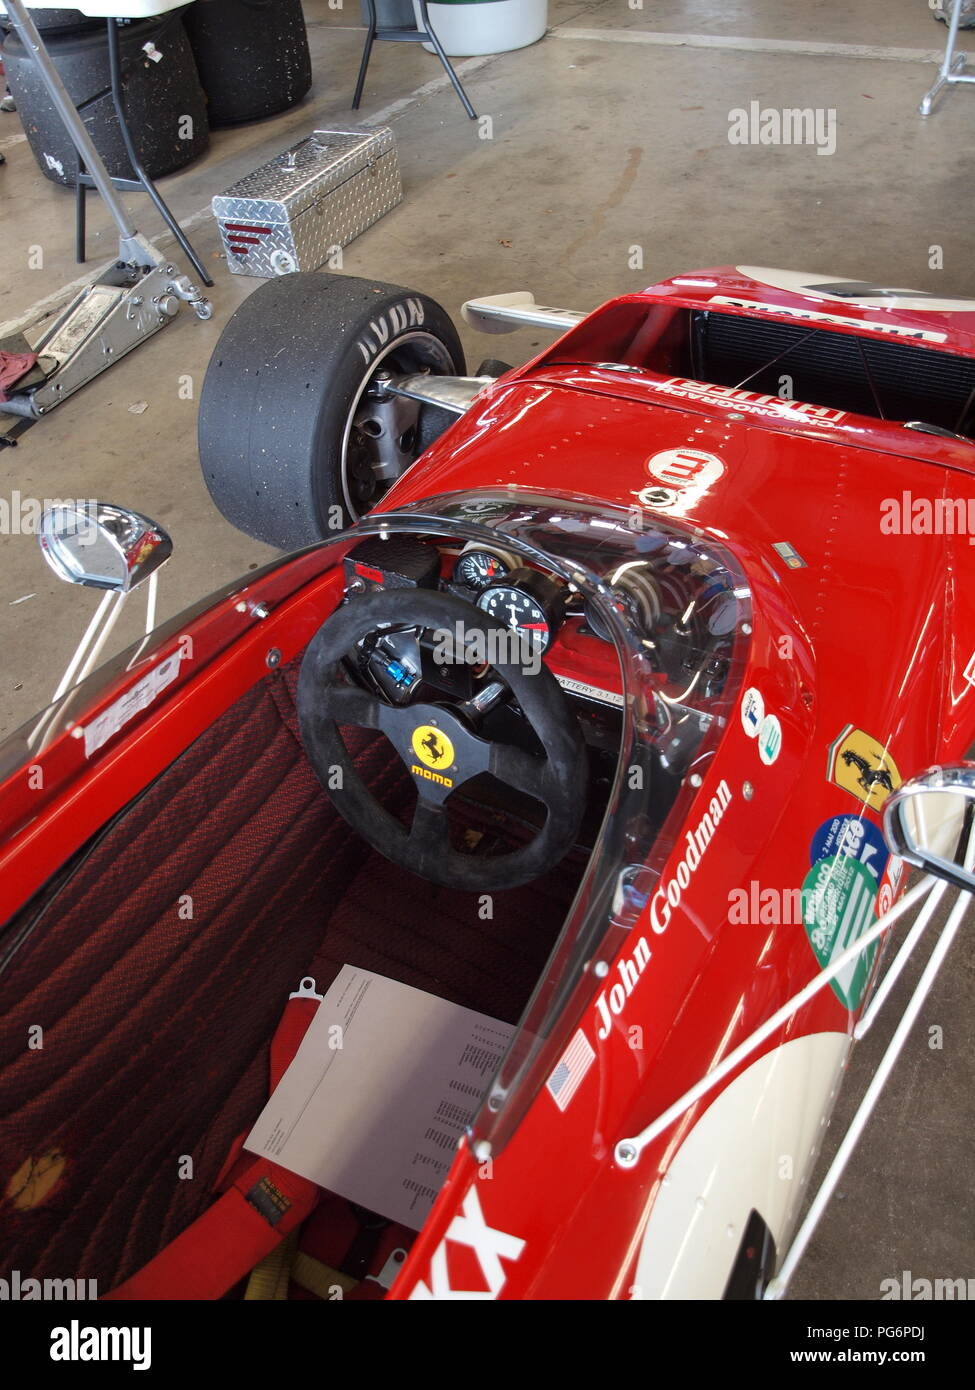 Restored Ferrari formula 1 race car once raced by Jacky Ickx noted French driver. This car was participating in the historic races at Watkins Glen, NY - Stock Image